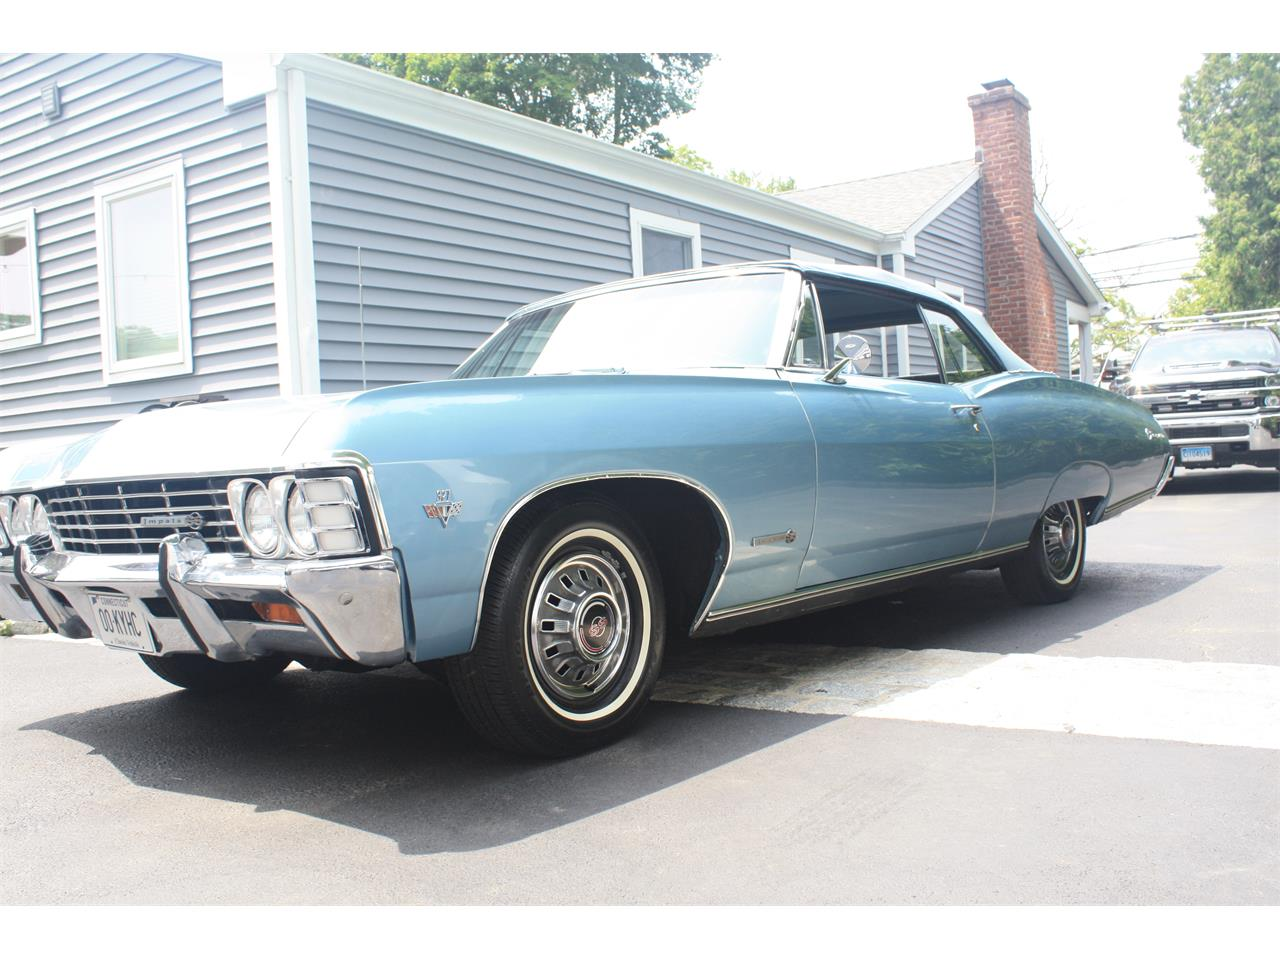 Large Picture of Classic '67 Chevrolet Impala SS located in Norwalk Connecticut Offered by a Private Seller - QB4Y